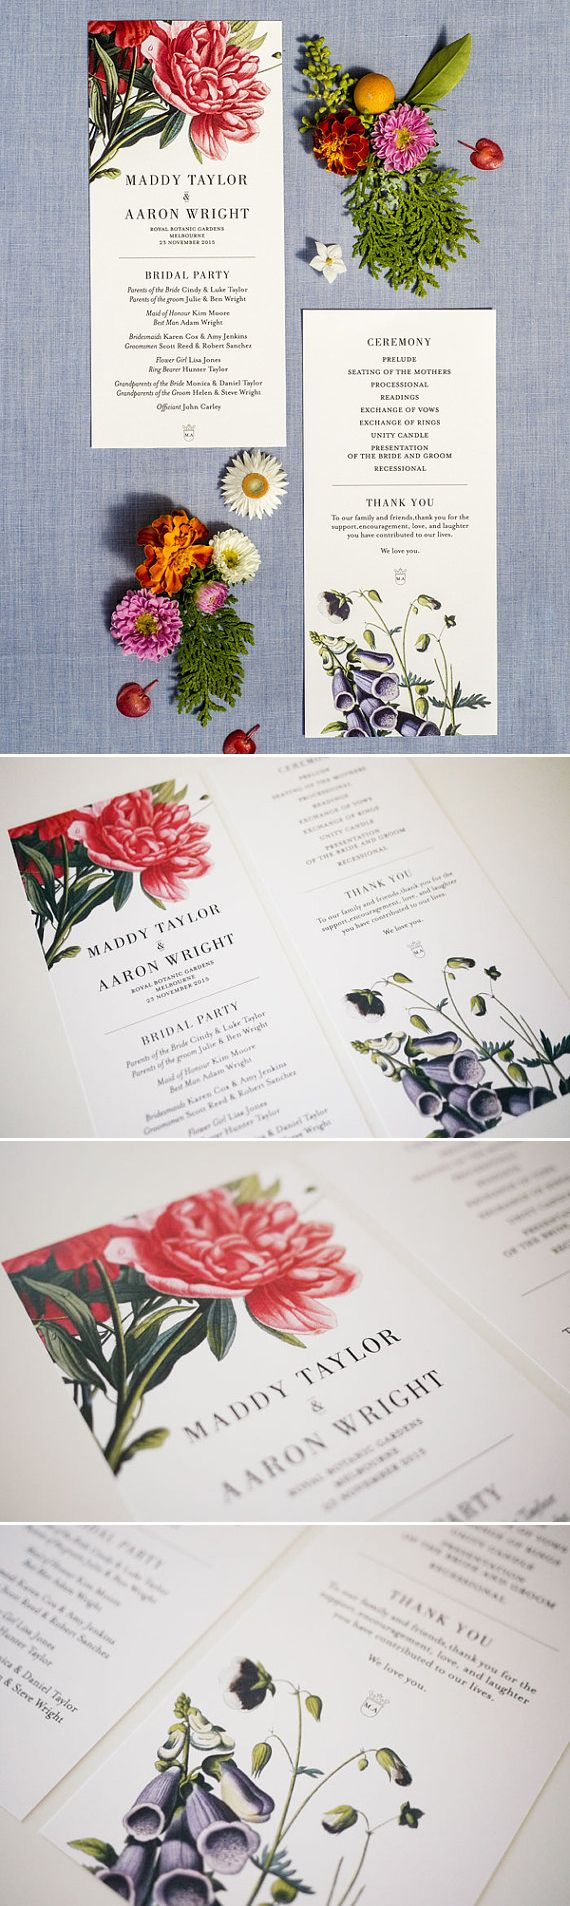 wedding card design wedding invitation software Botanical Floral Order of Service Wedding Program Printable 3EggsDesign design graphicdesign wedding